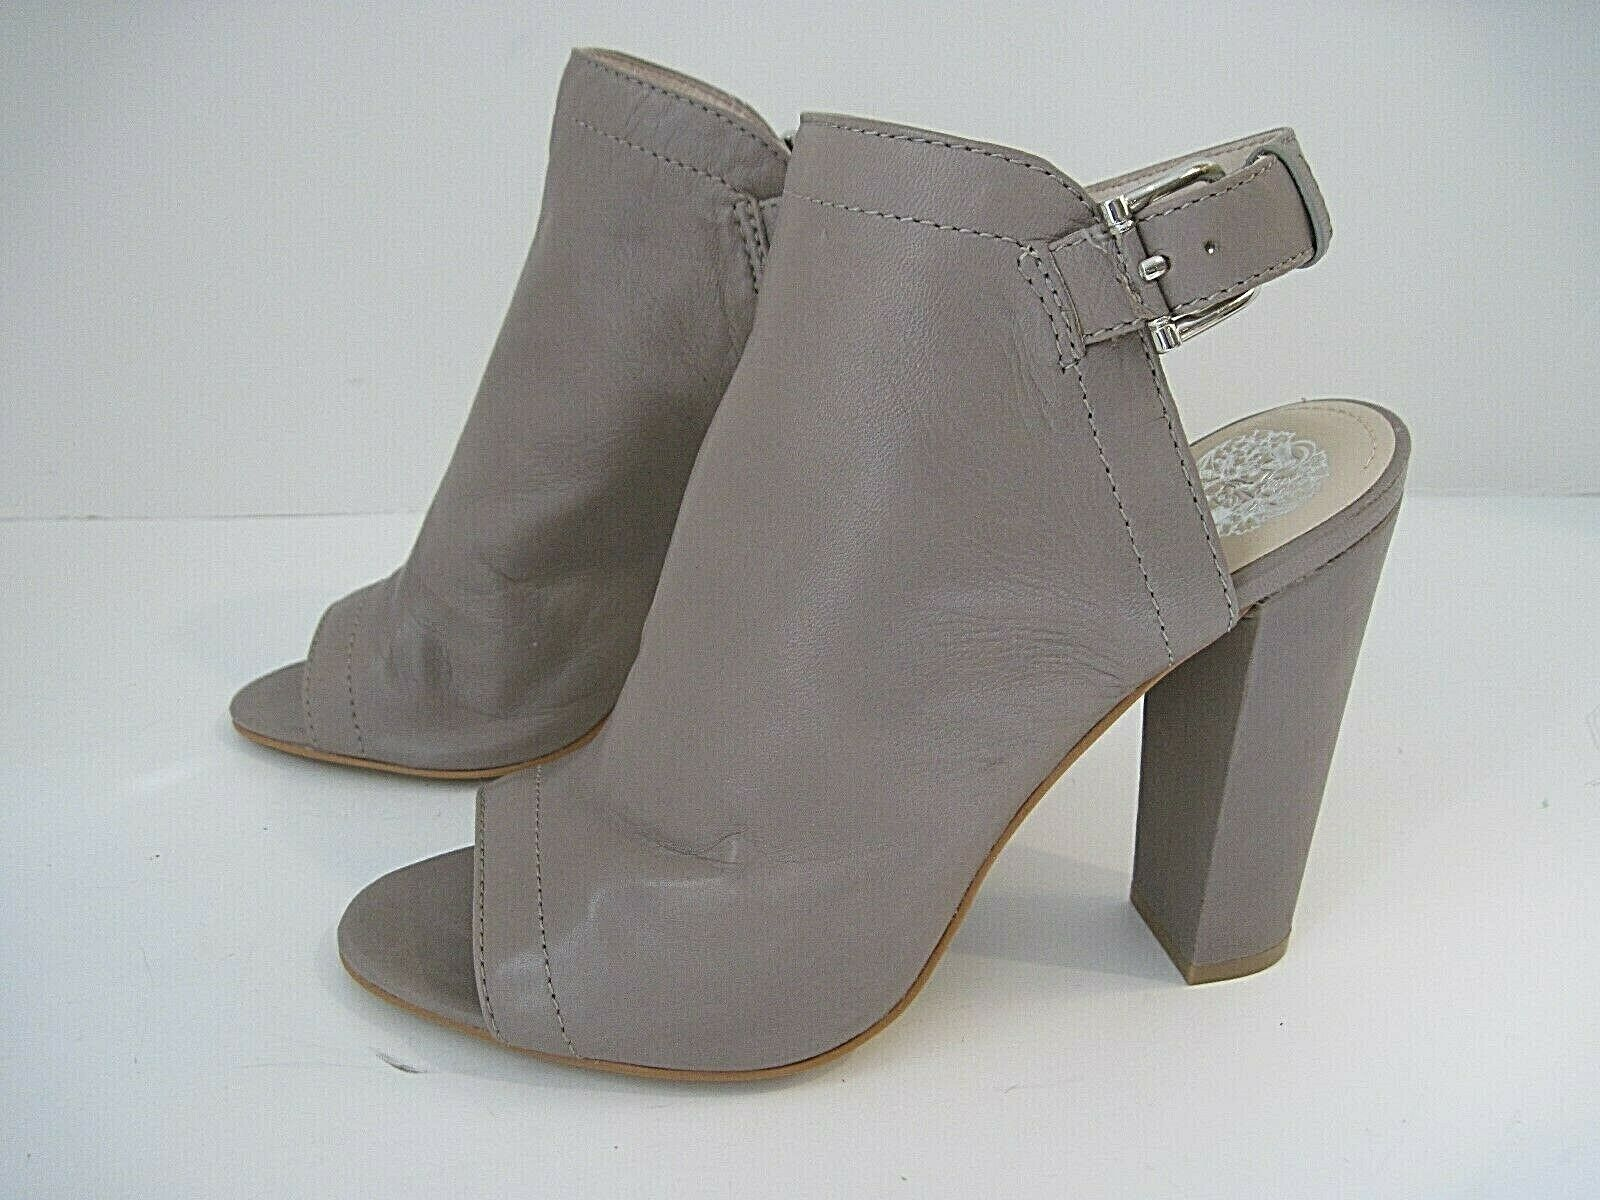 Vince Camuto Dress Sandals Booties In Mink color Size 8M 38, NEW